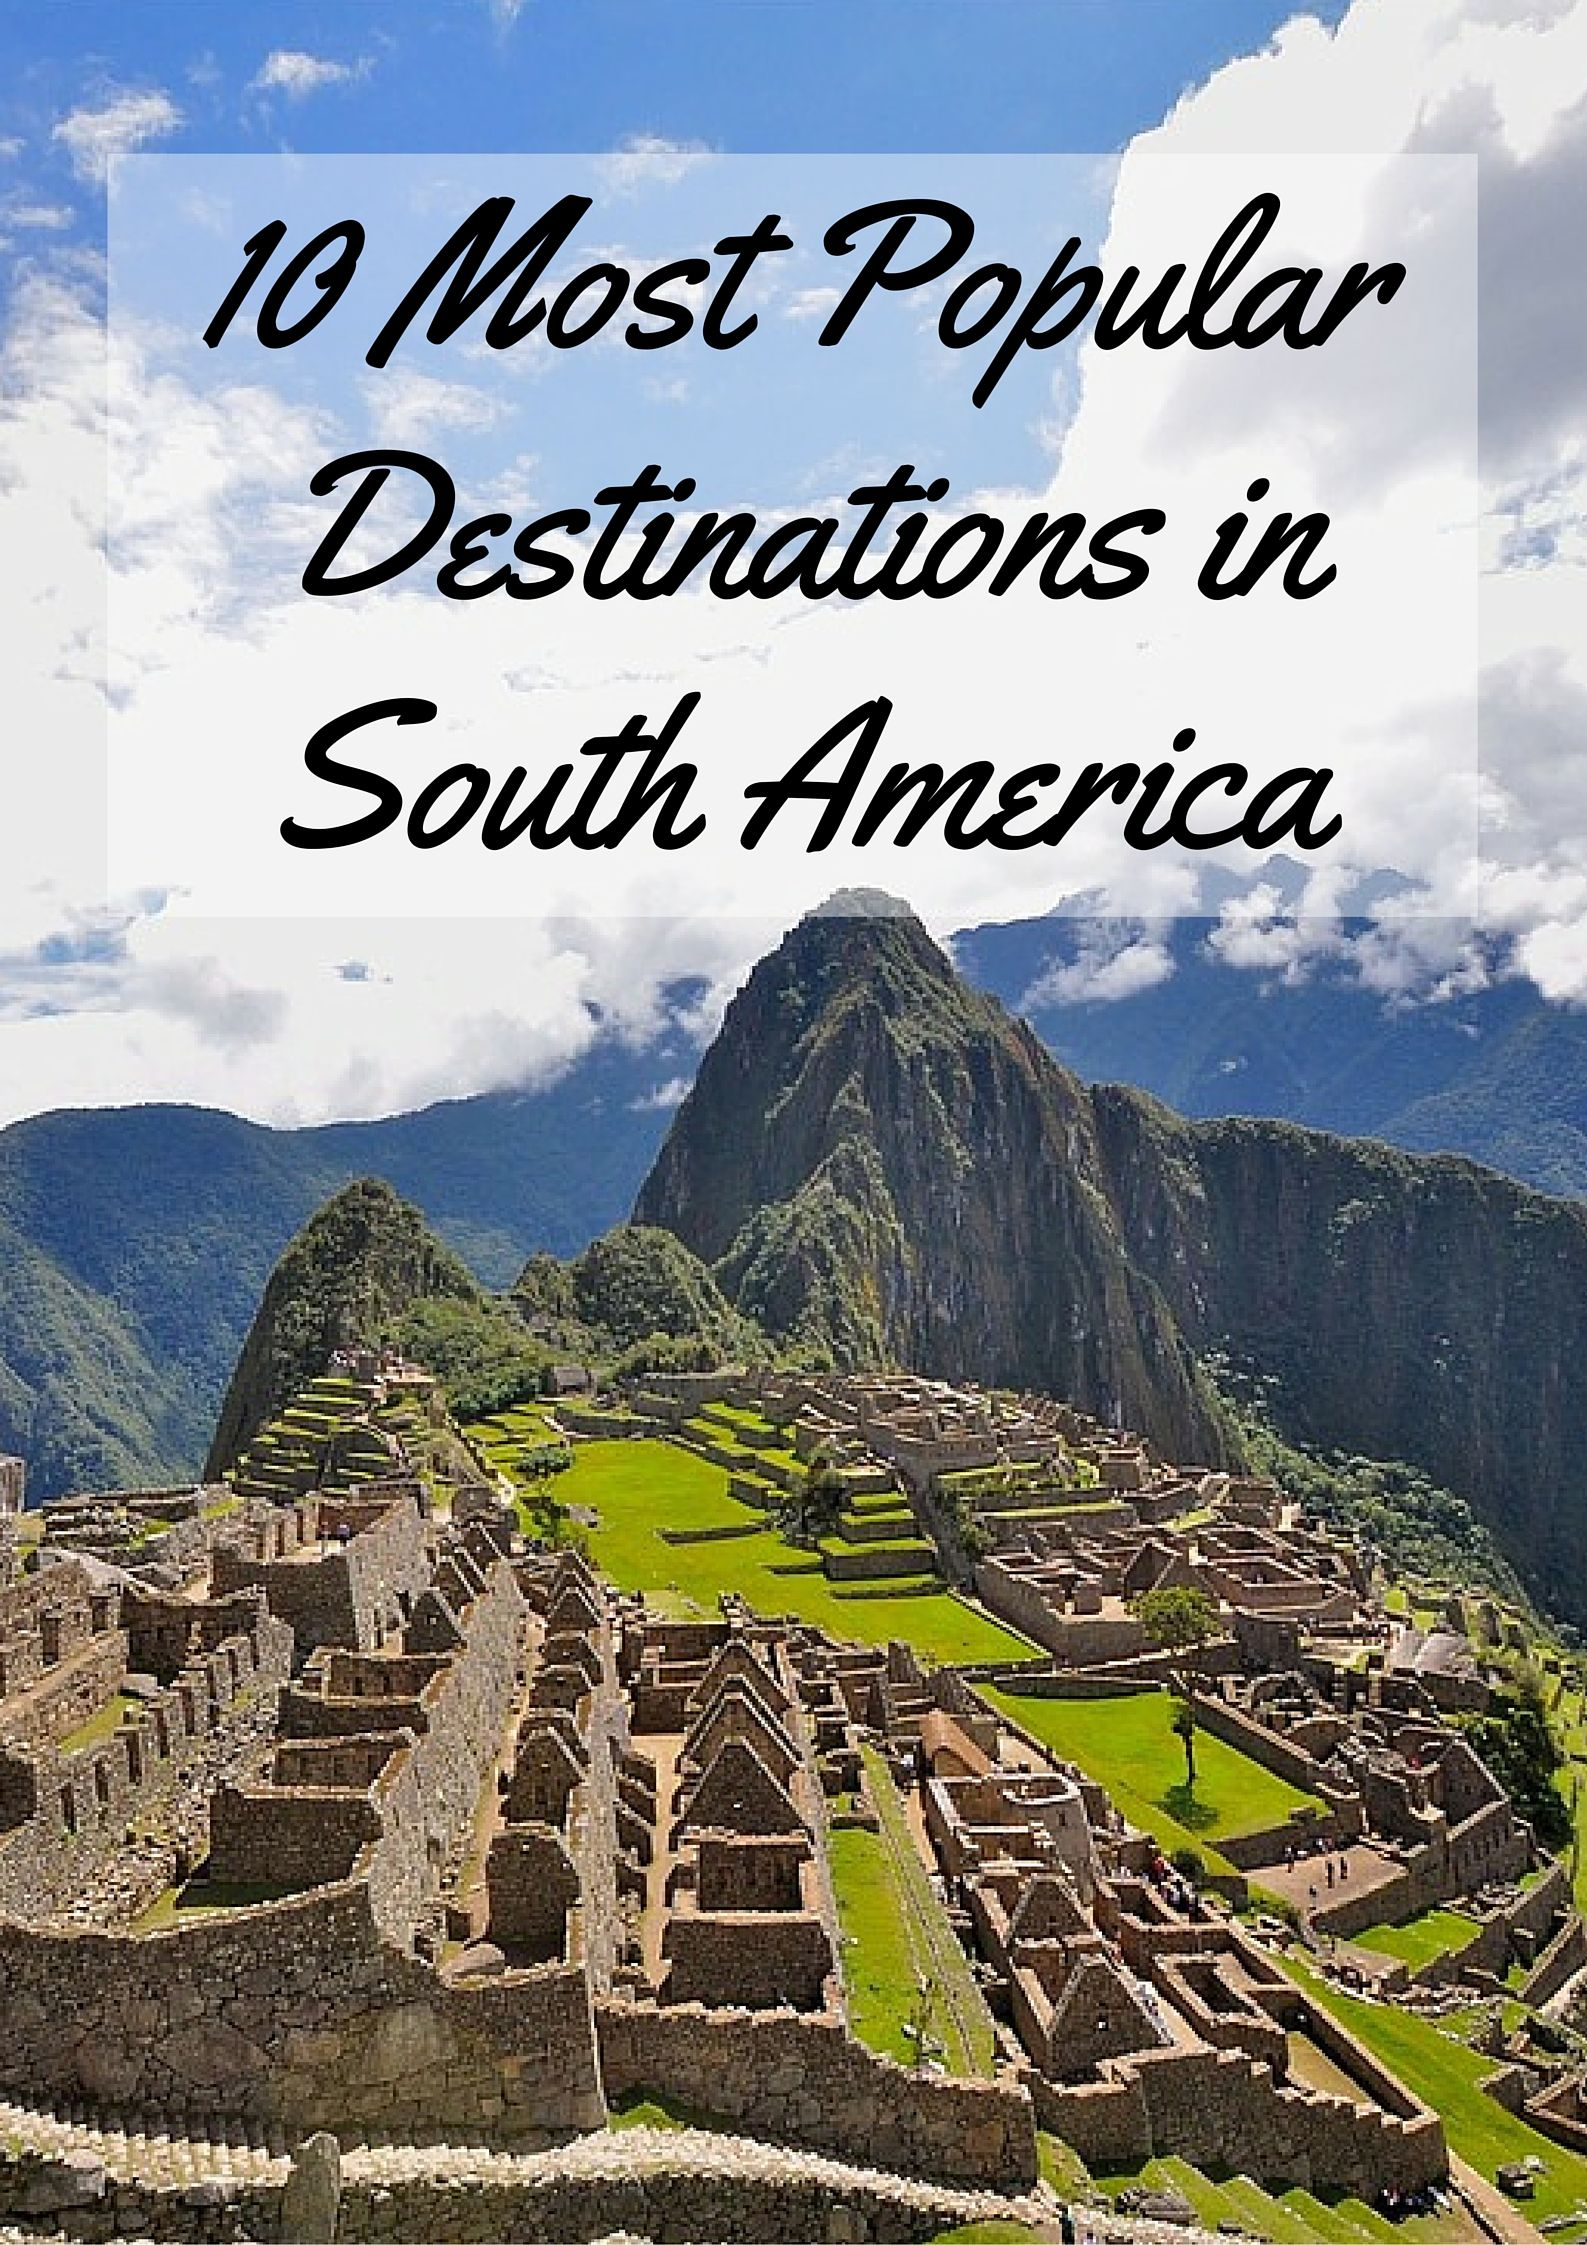 10 Most Popular Destinations in South America Usa travel